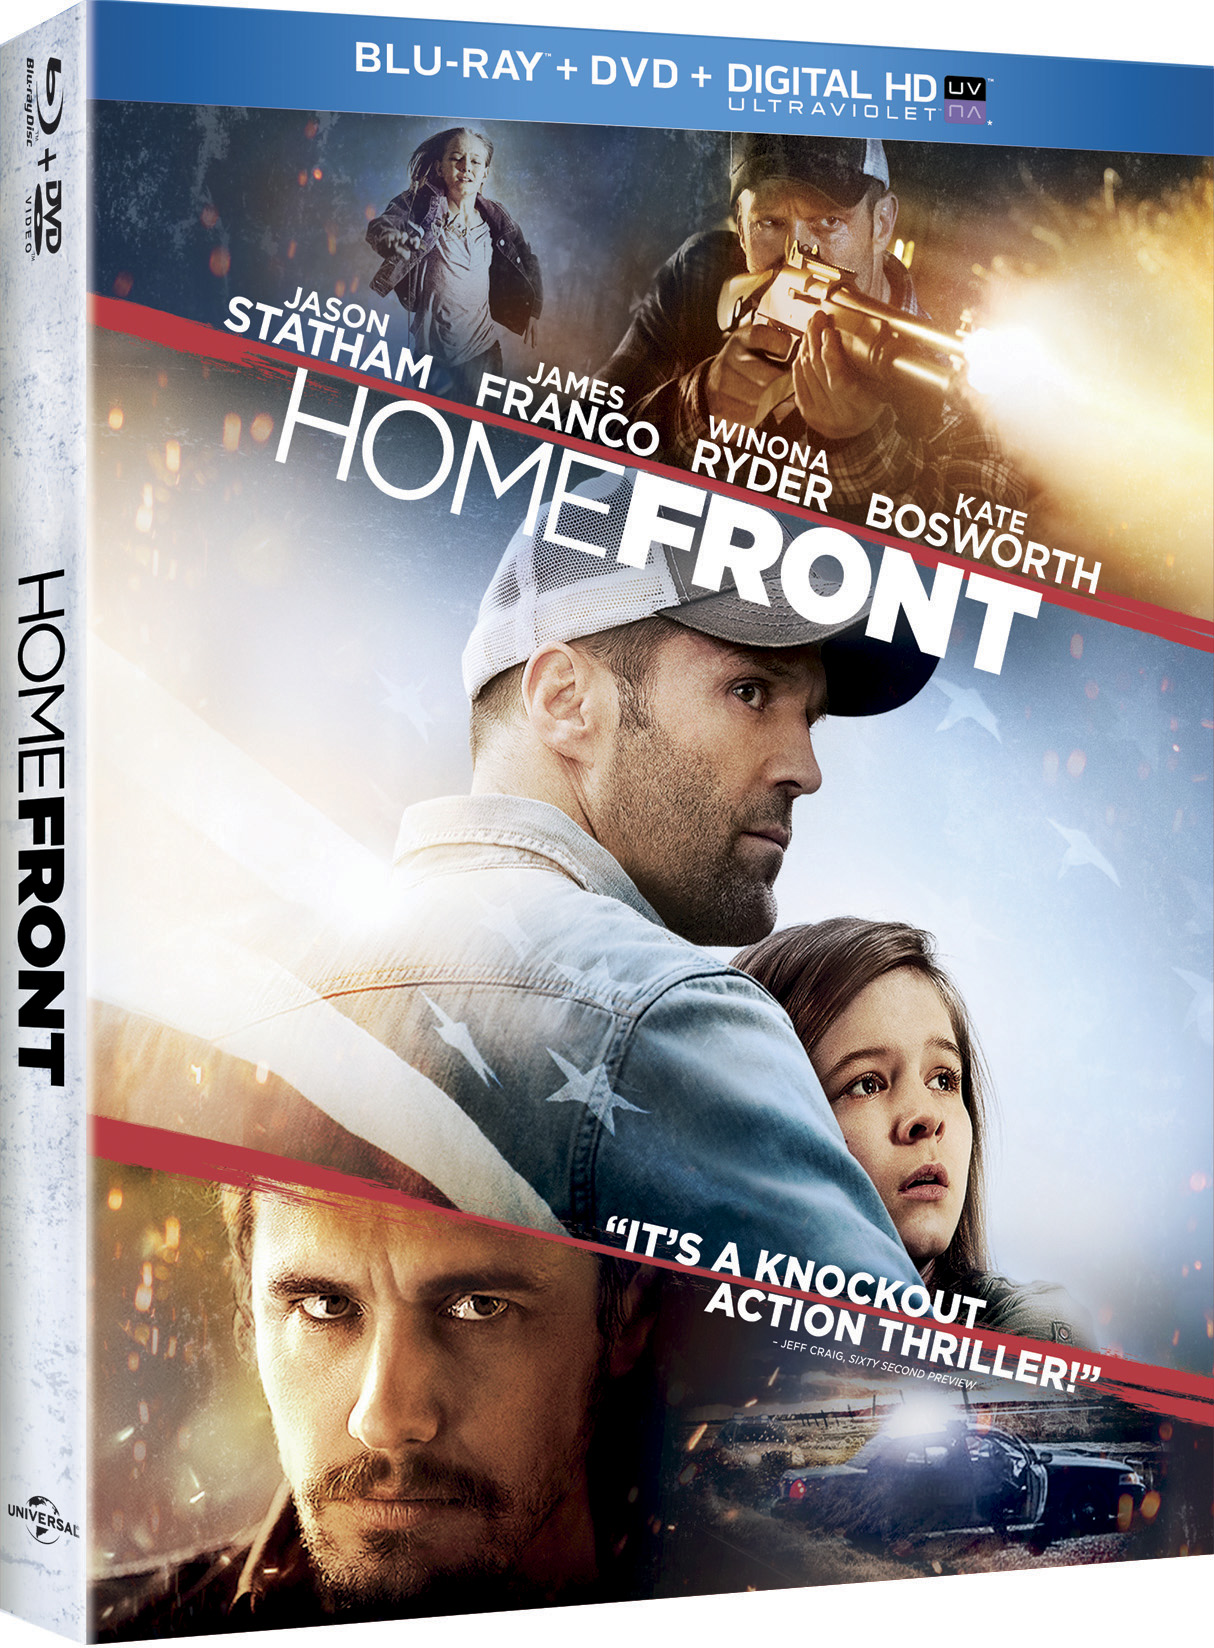 Homefront Blu-ray Review